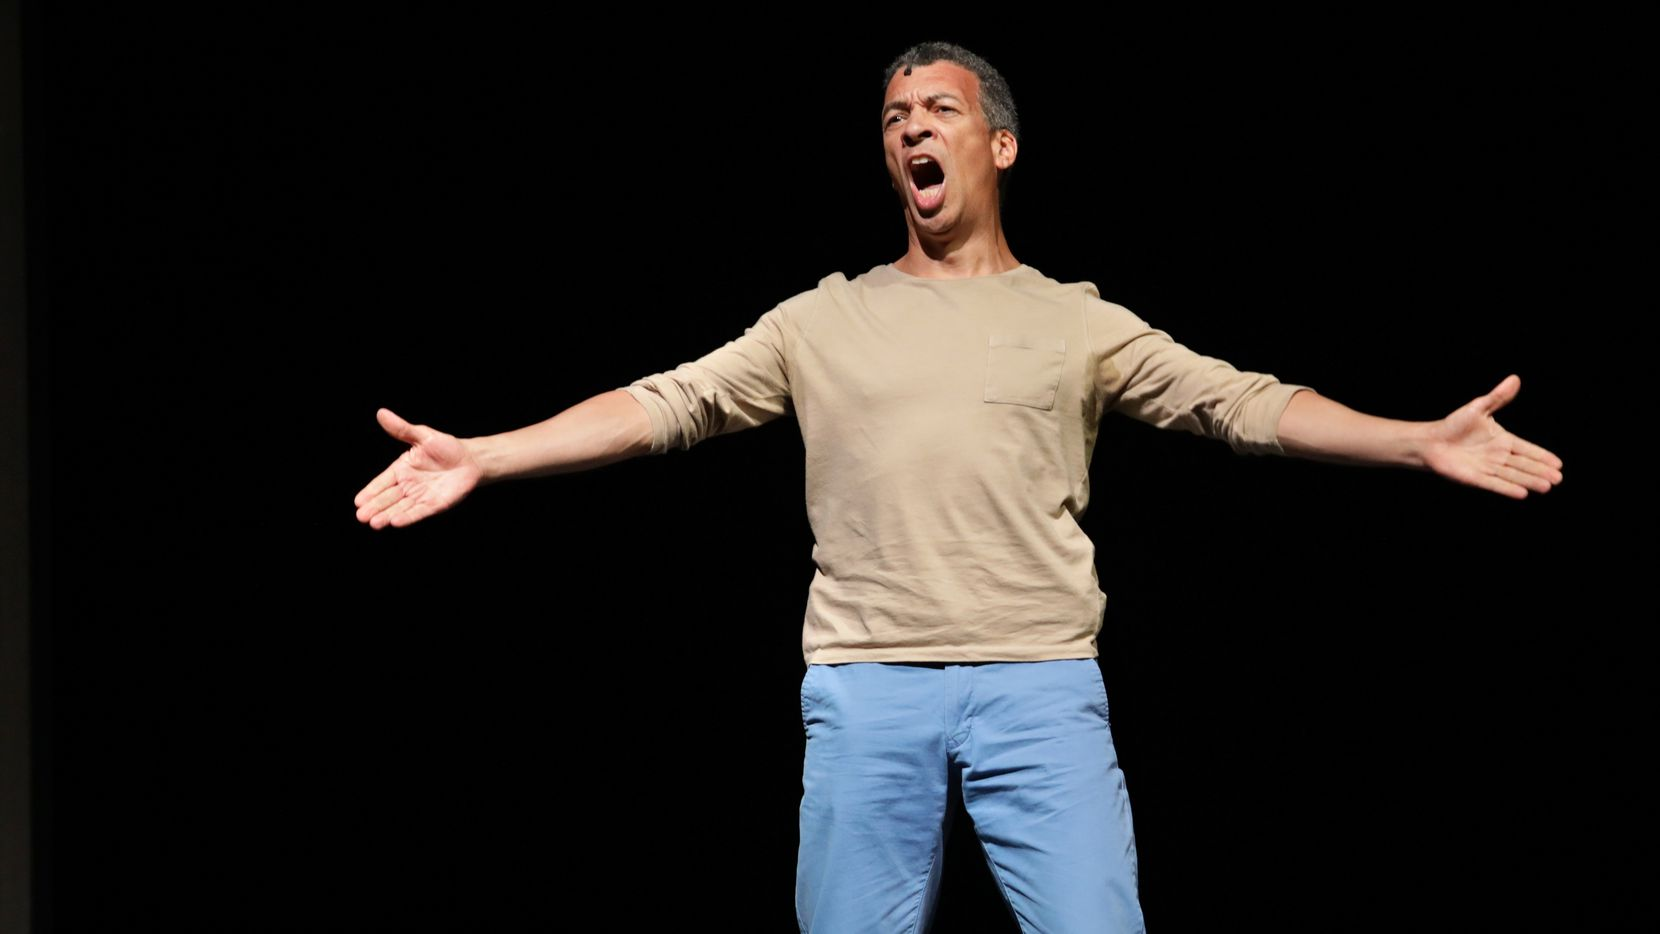 """Roderick Williams performs in the Dallas Opera's production of """"Sunken Garden,"""" by Michel van der Aa, at the Winspear Opera House in 2018. The DO Guild Biennial Lone Star Vocal Competition is going virtual this year and the contestant with the most votes will be announced as the winner on June 8 via social media and the DO's website."""